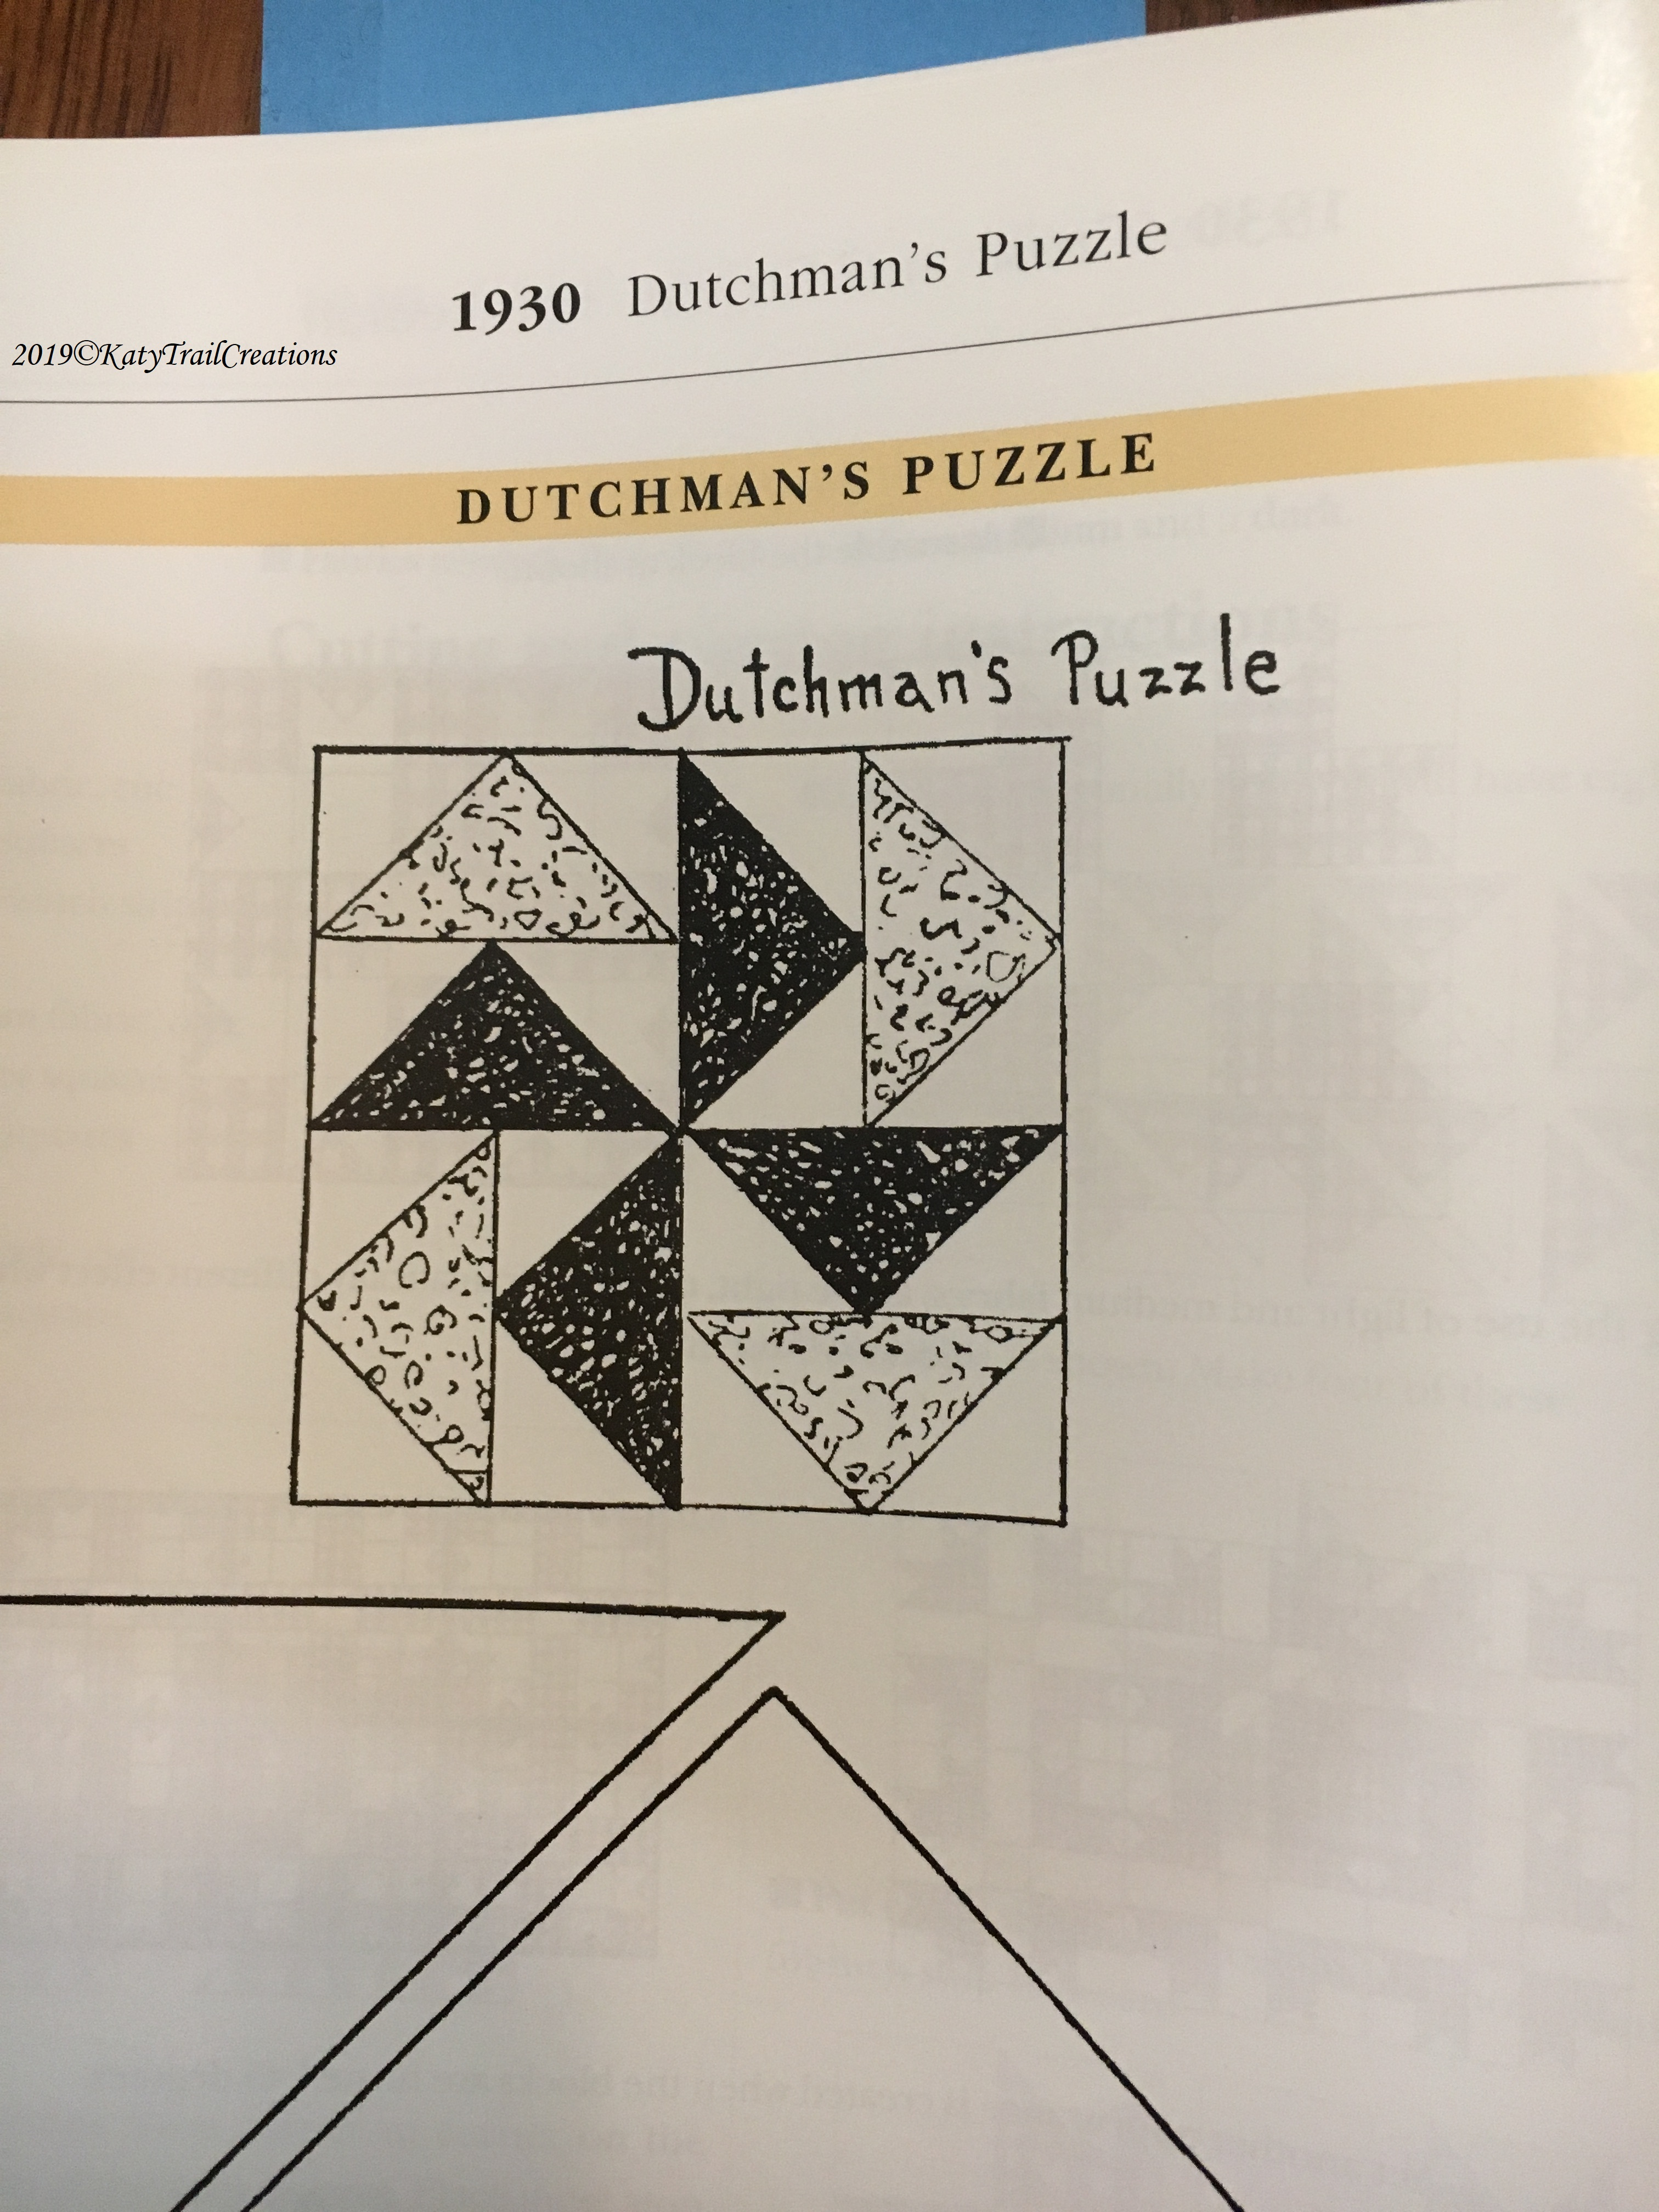 1930 Dutchman's Puzzle from Star Quilts